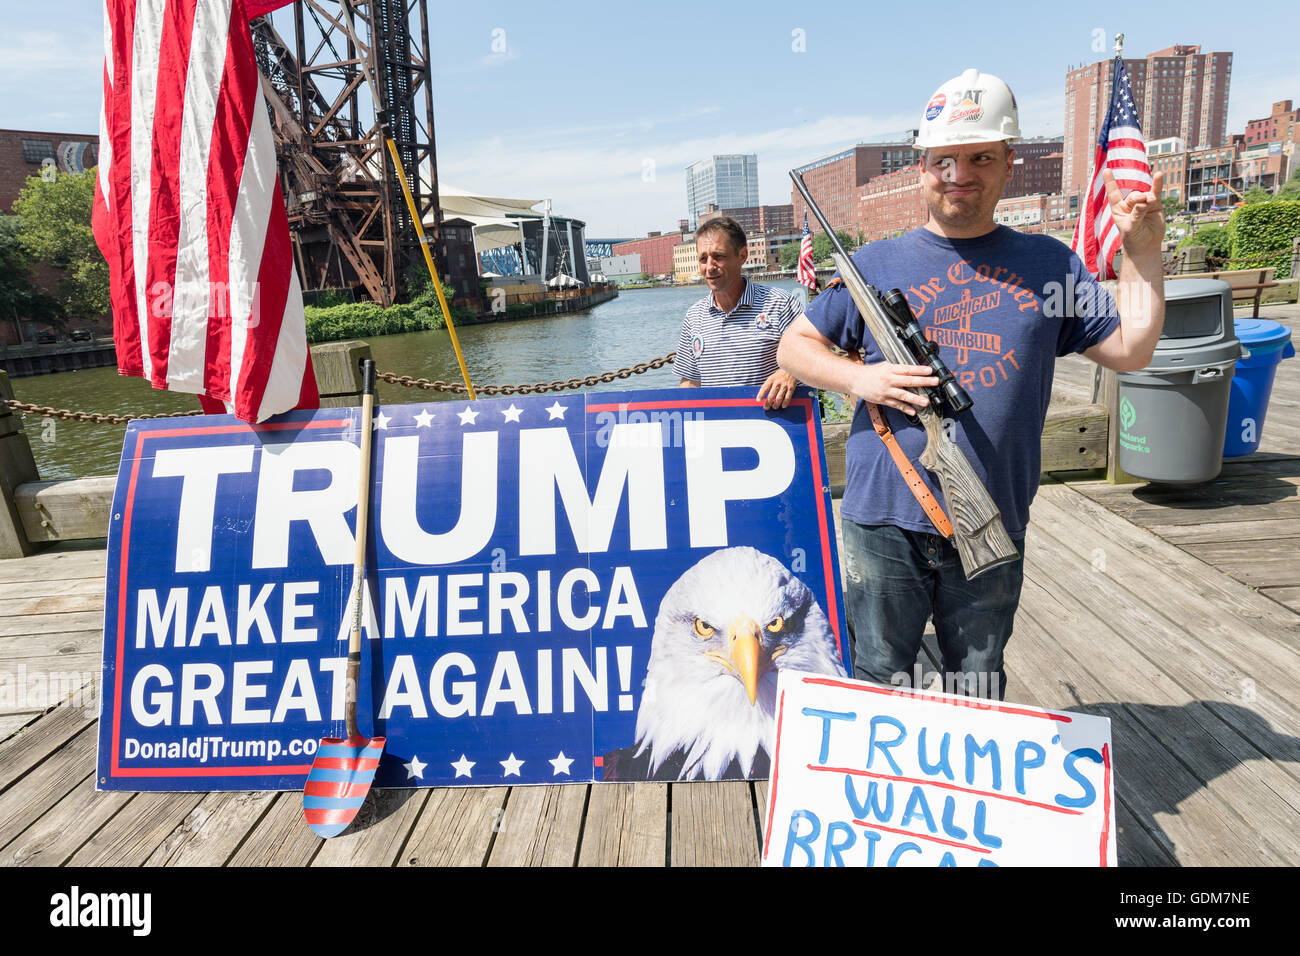 Cleveland, Ohio, USA. 18th July, 2016. A Trump supporter stands holding a hunting rifle during a rally near the - Stock Image